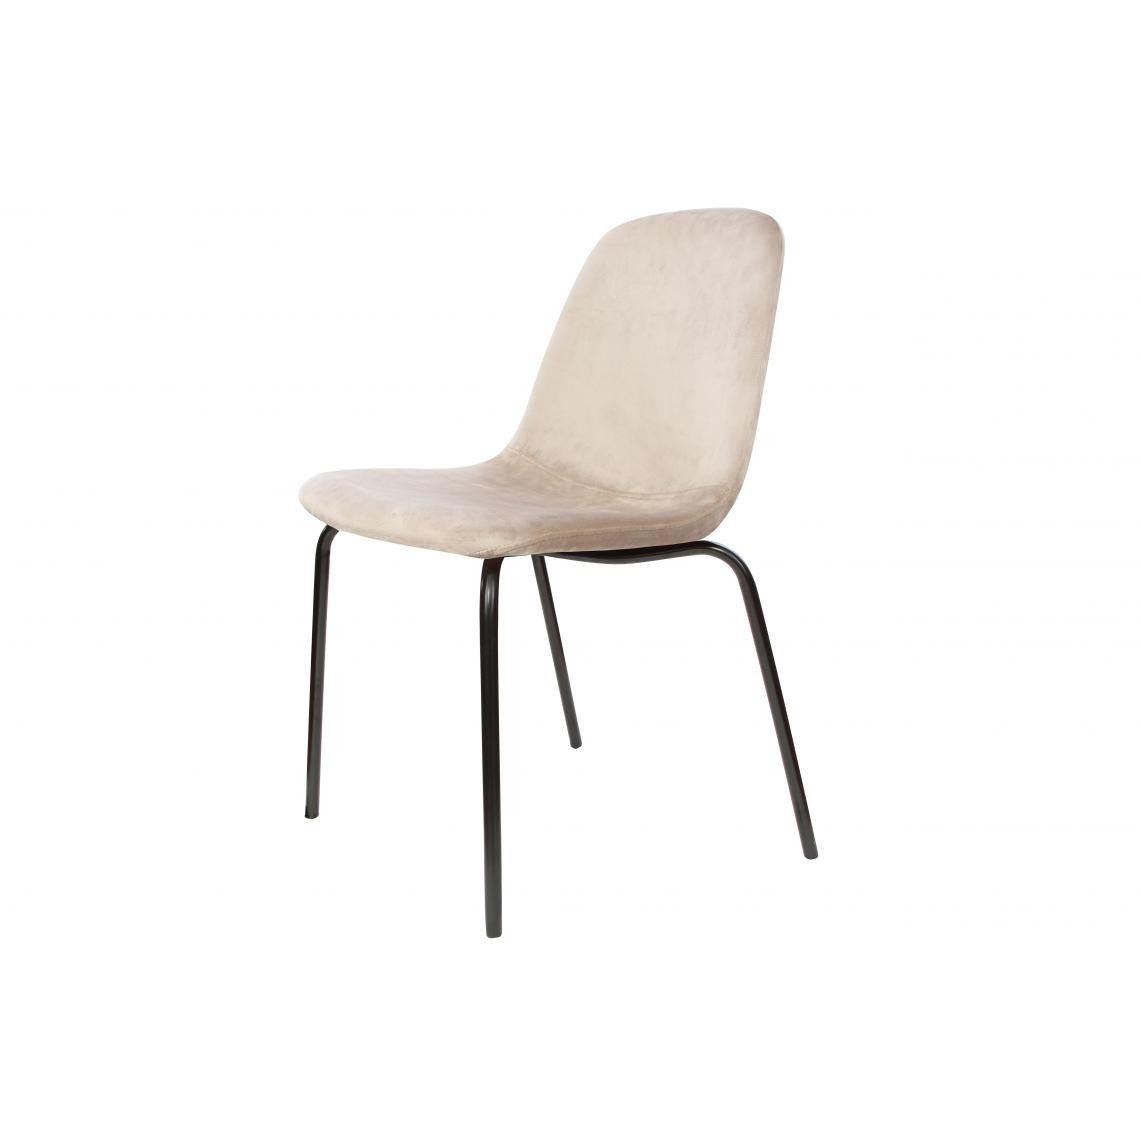 Chaise Taupe Velours en VELVITO Chaise l1T3FKJc